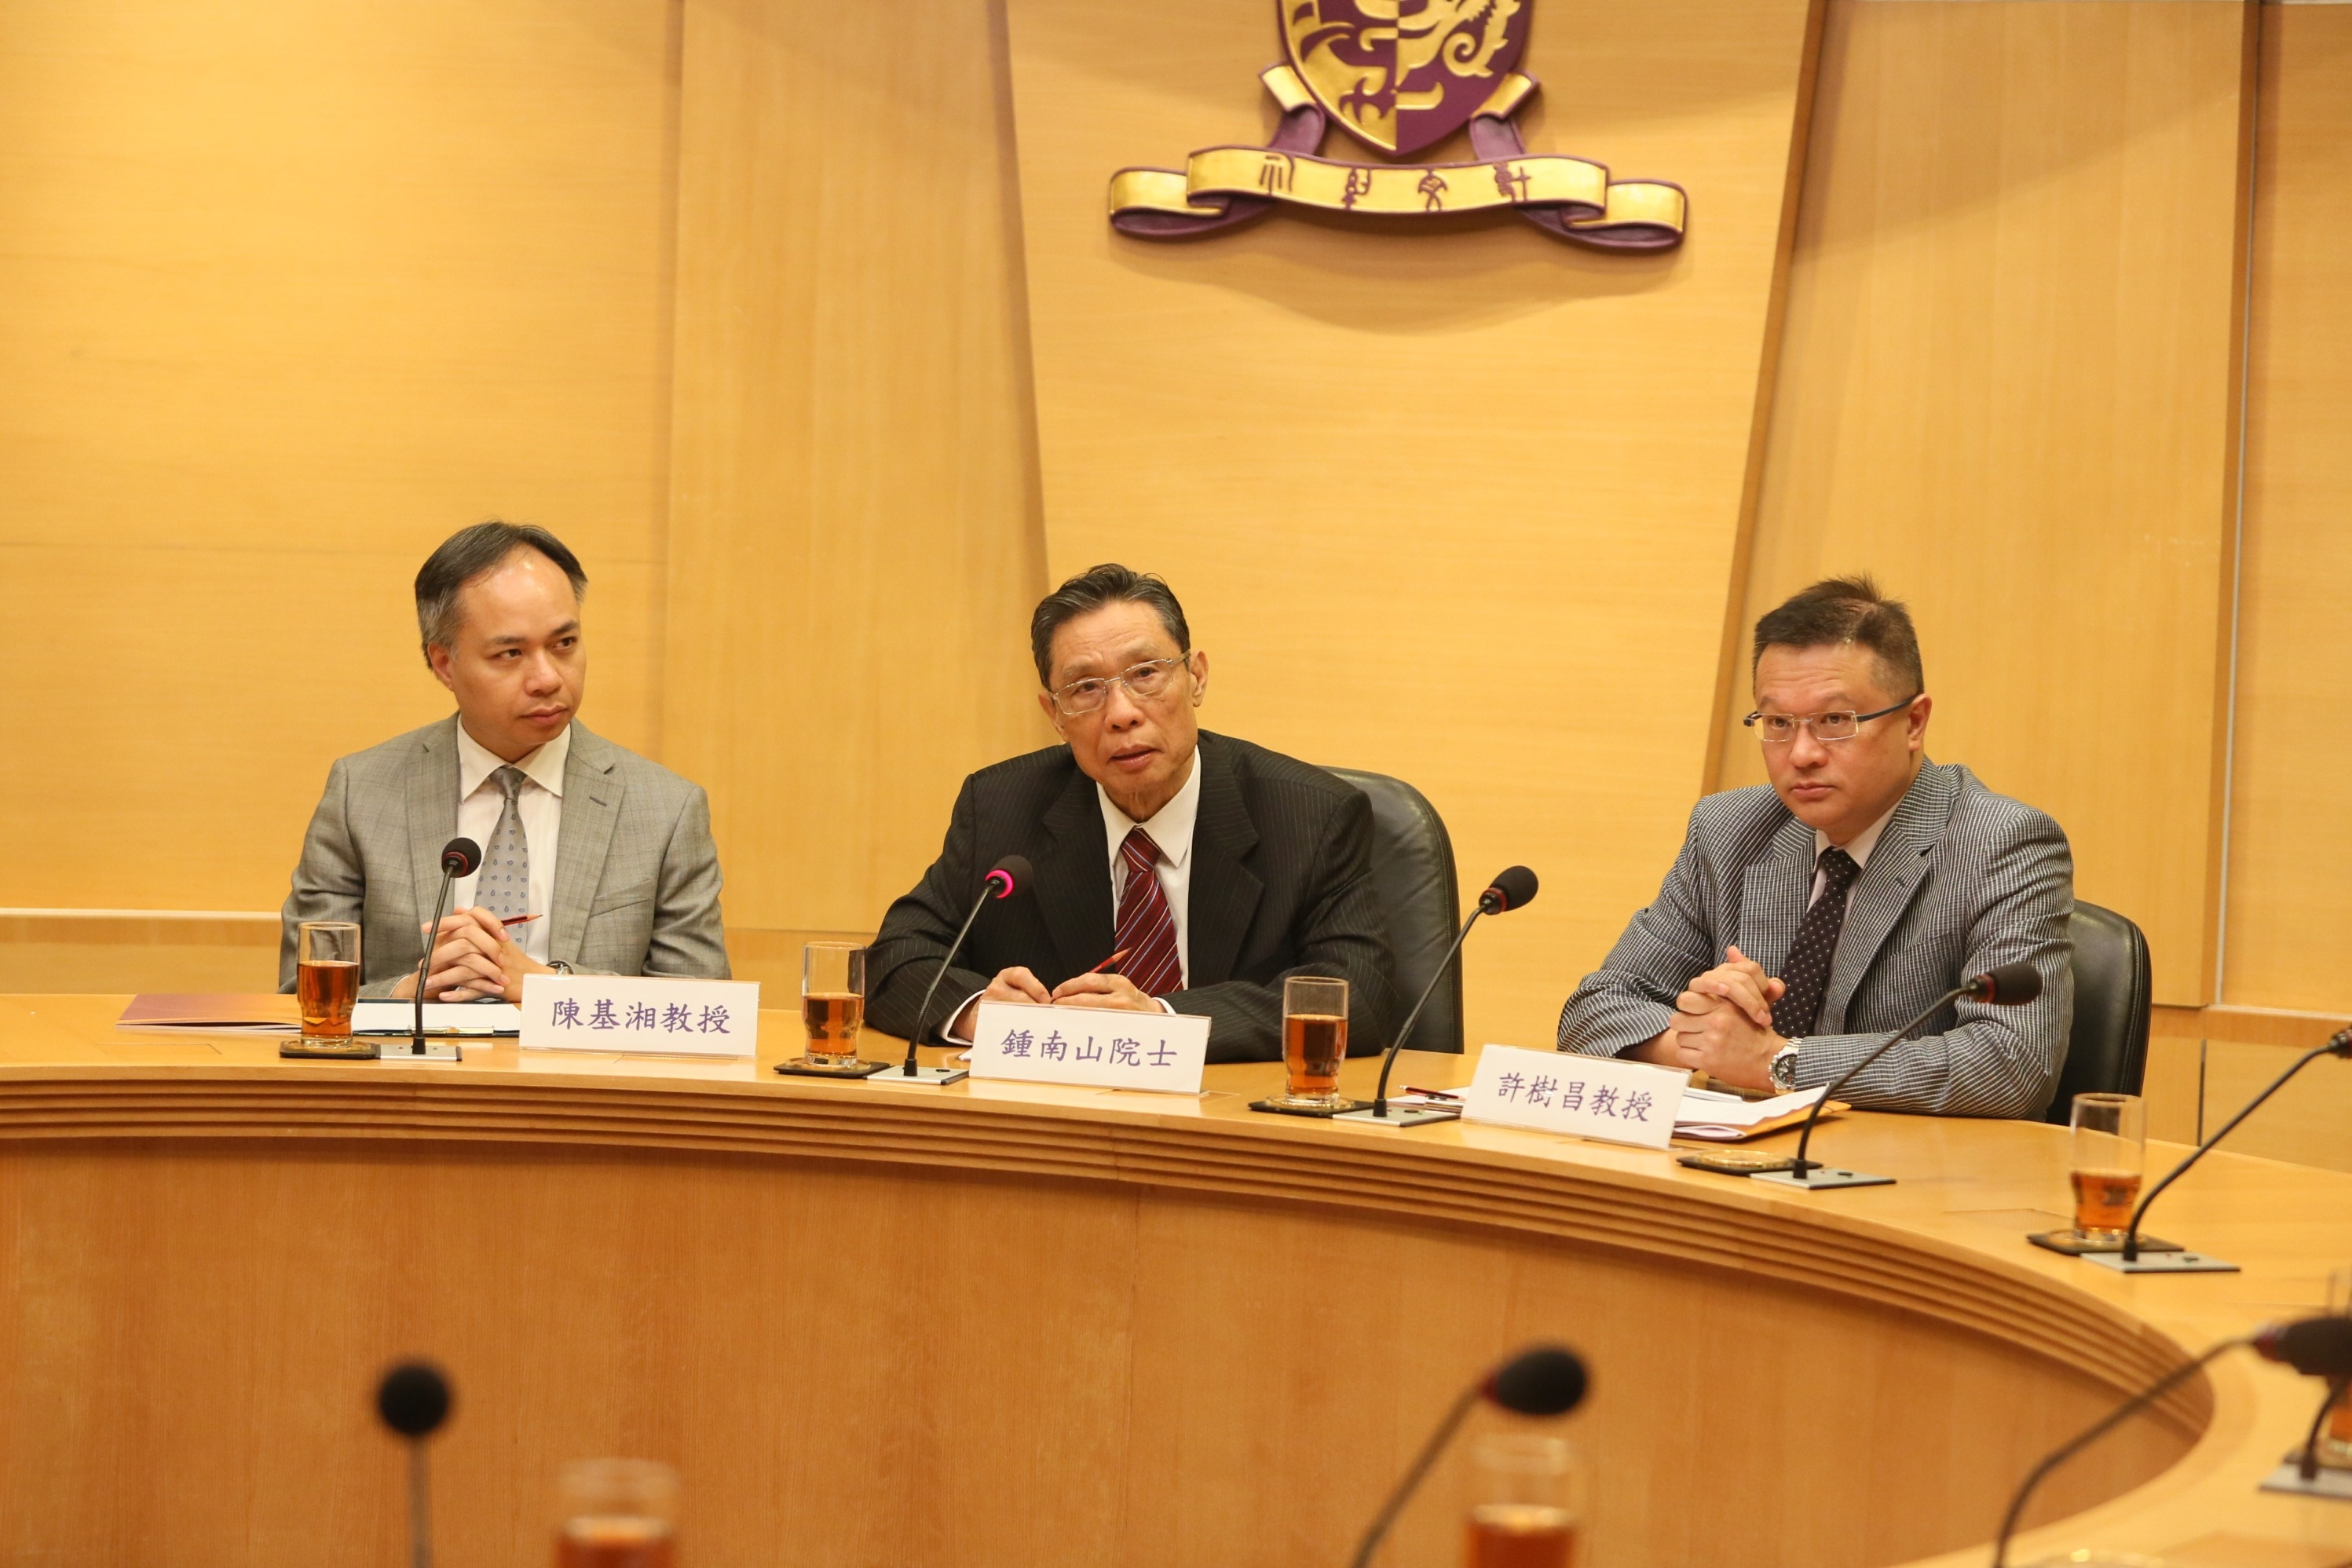 A panel discussion session after the lecture by Prof. Zhong Nanshan (middle), Prof. David Shu-cheong Hui, Head of Division of Respiratory Medicine, Department of Medicine and Therapeutics, and Director of Stanley Ho Centre for Emerging Infectious Diseases (right); and Prof. Paul Kay-sheung Chan, Chairman of Department of Microbiology and Deputy Director of Stanley Ho Centre for Emerging Infectious Diseases, CUHK.